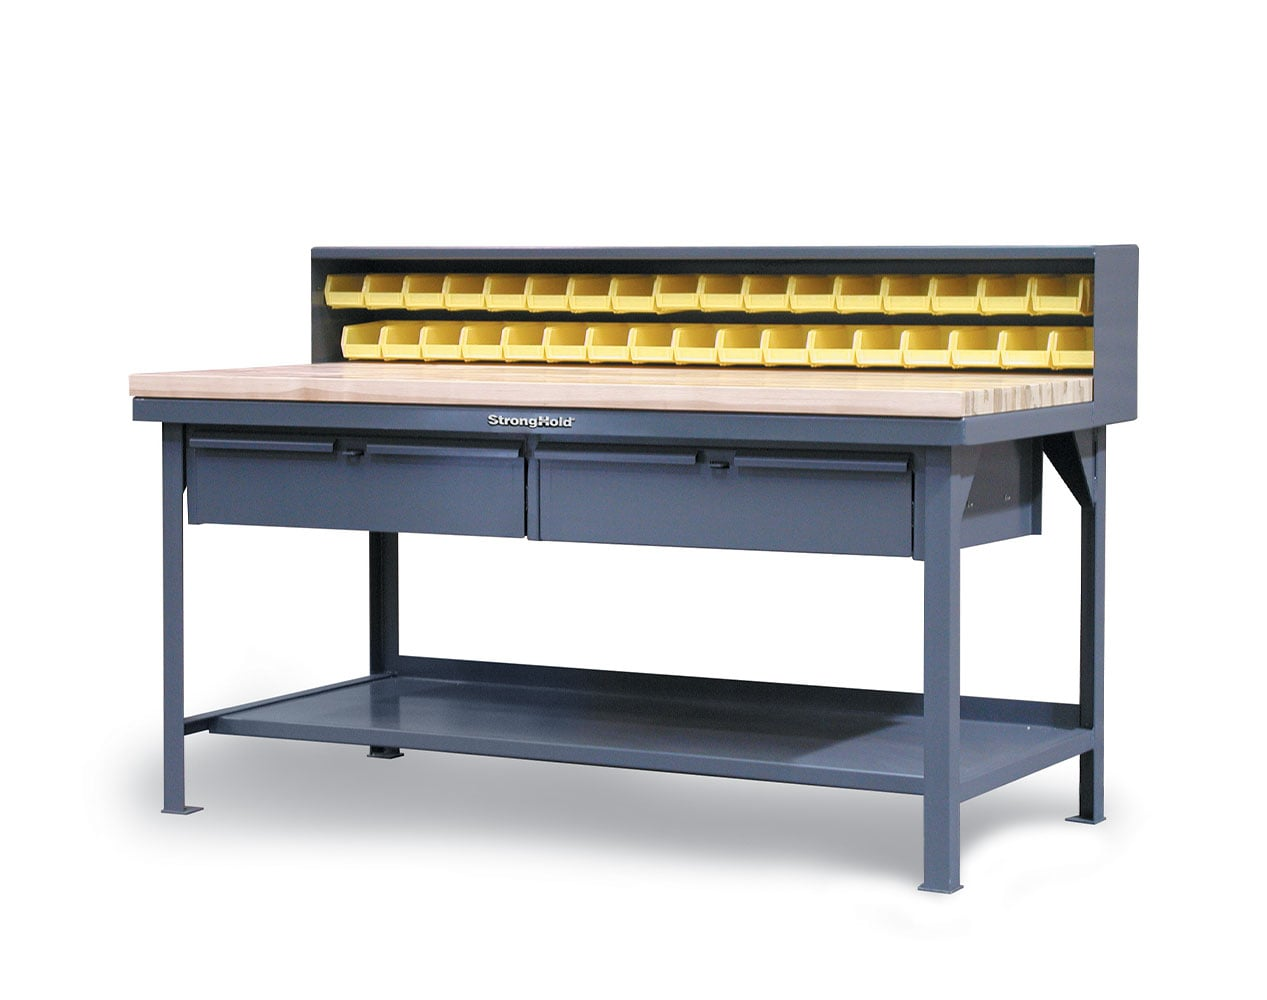 Extra Heavy Duty 7 GA Shop Table with Maple Top, Riser Shelf, 28 Bins, 2 Drawers – 60 In. W x 36 In. D x 48 In. H